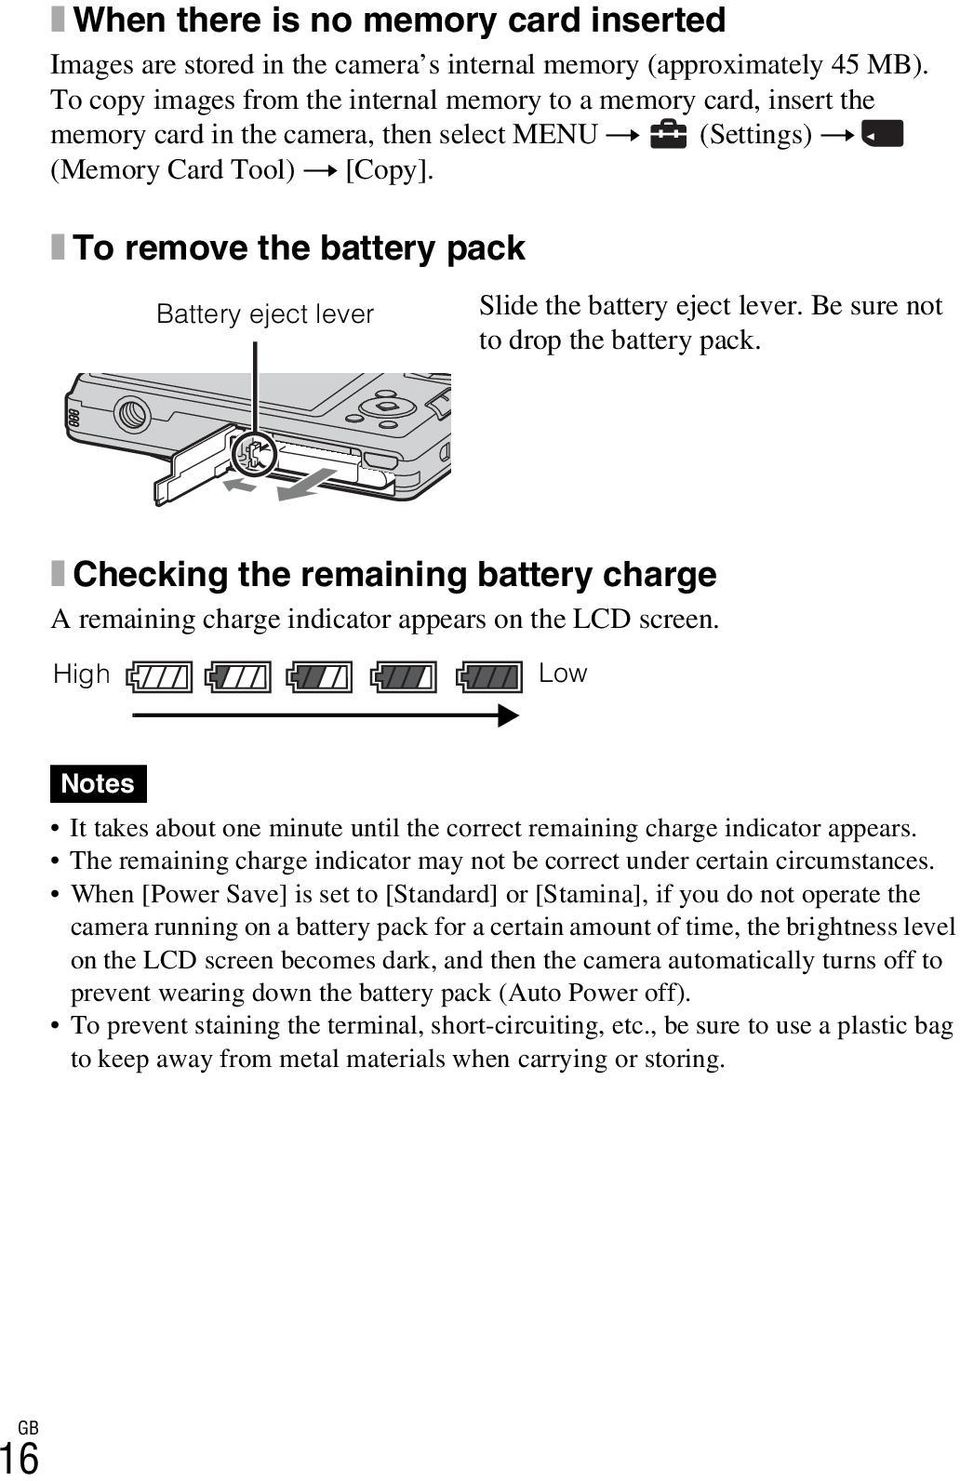 x To remove the battery pack Battery eject lever Slide the battery eject lever. Be sure not to drop the battery pack.